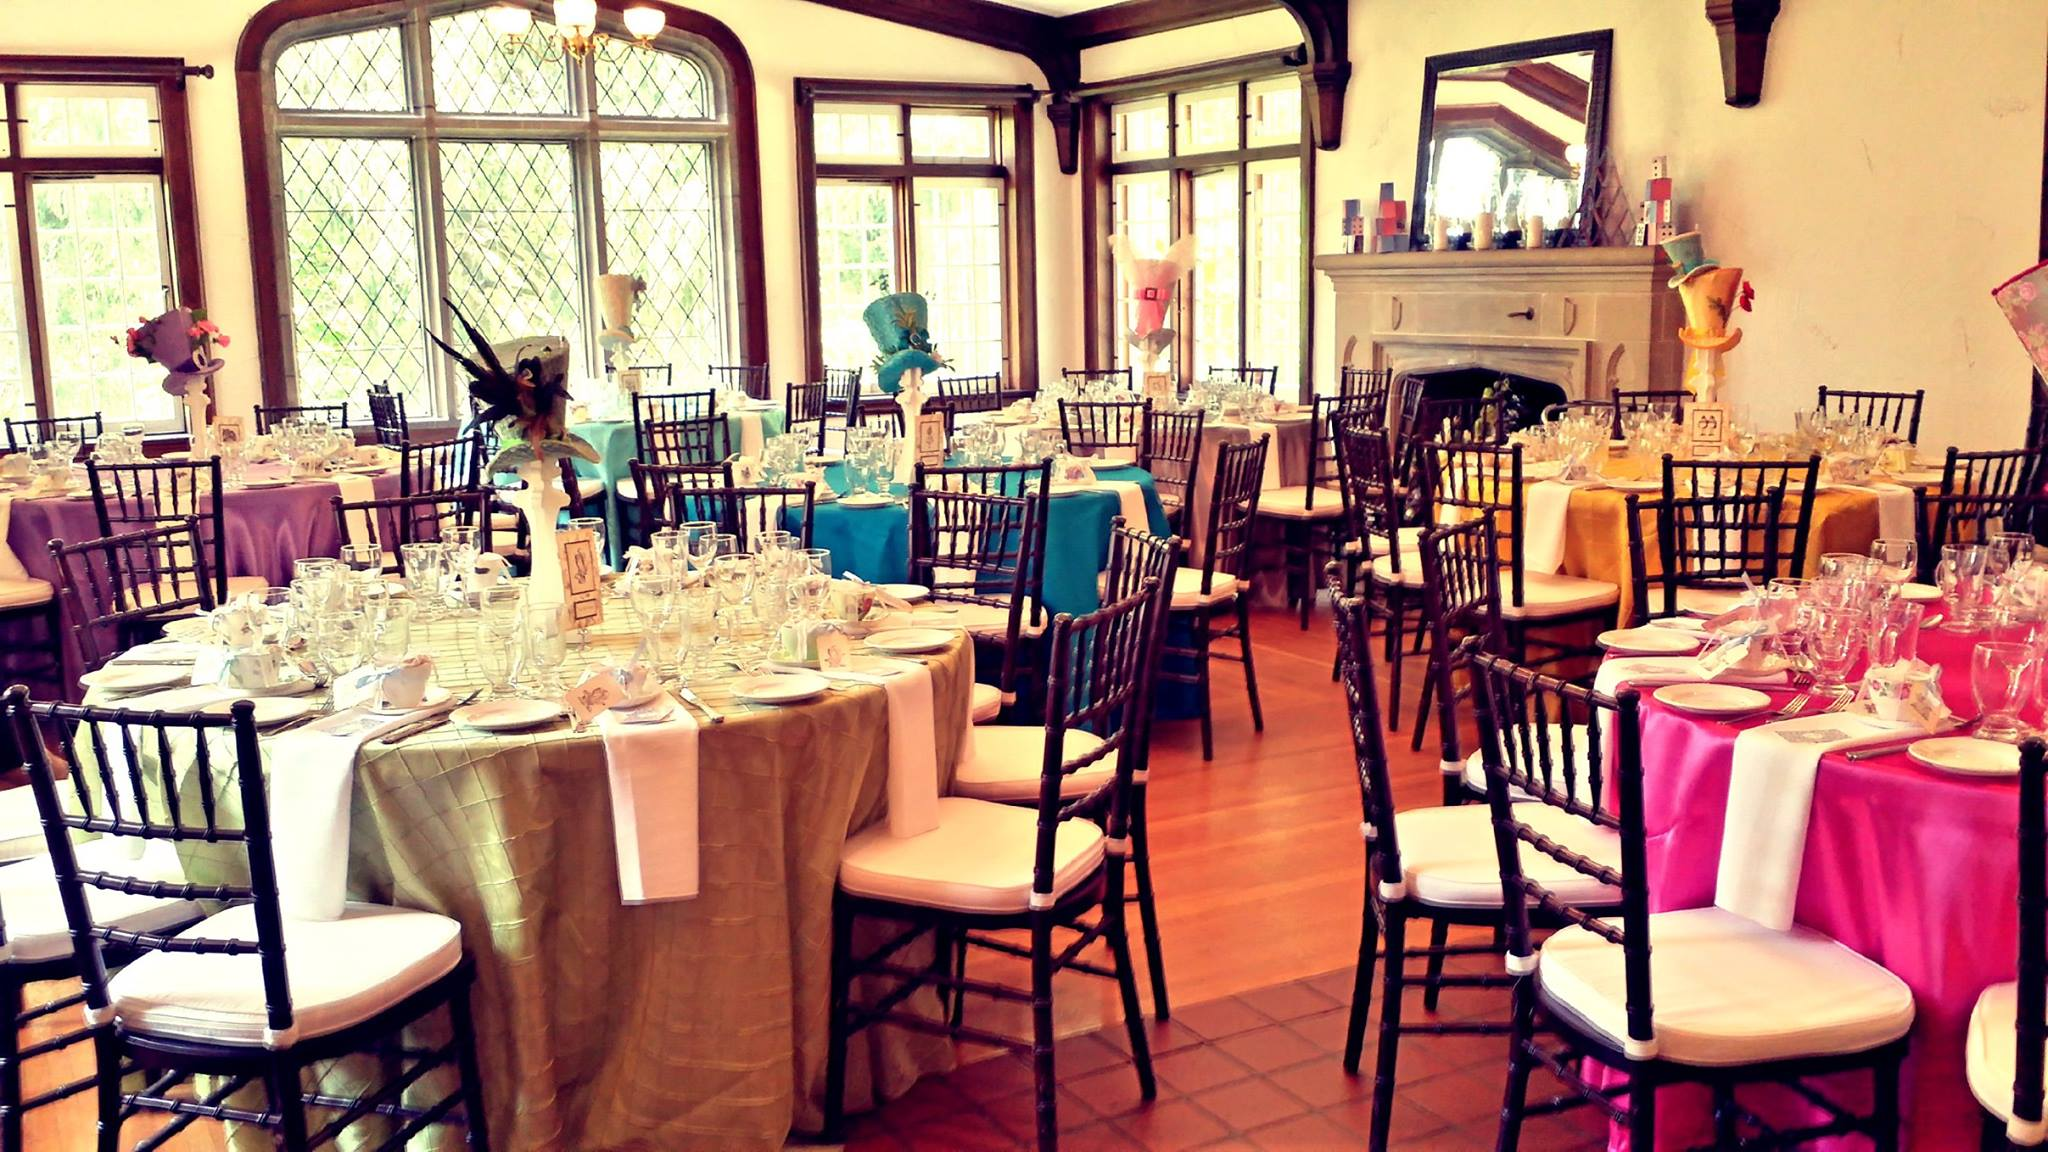 a room filled with tables and chairs set for dinner with different brightly coloured tables clothes and top hat centerpieces styled like Alice in Wonderland